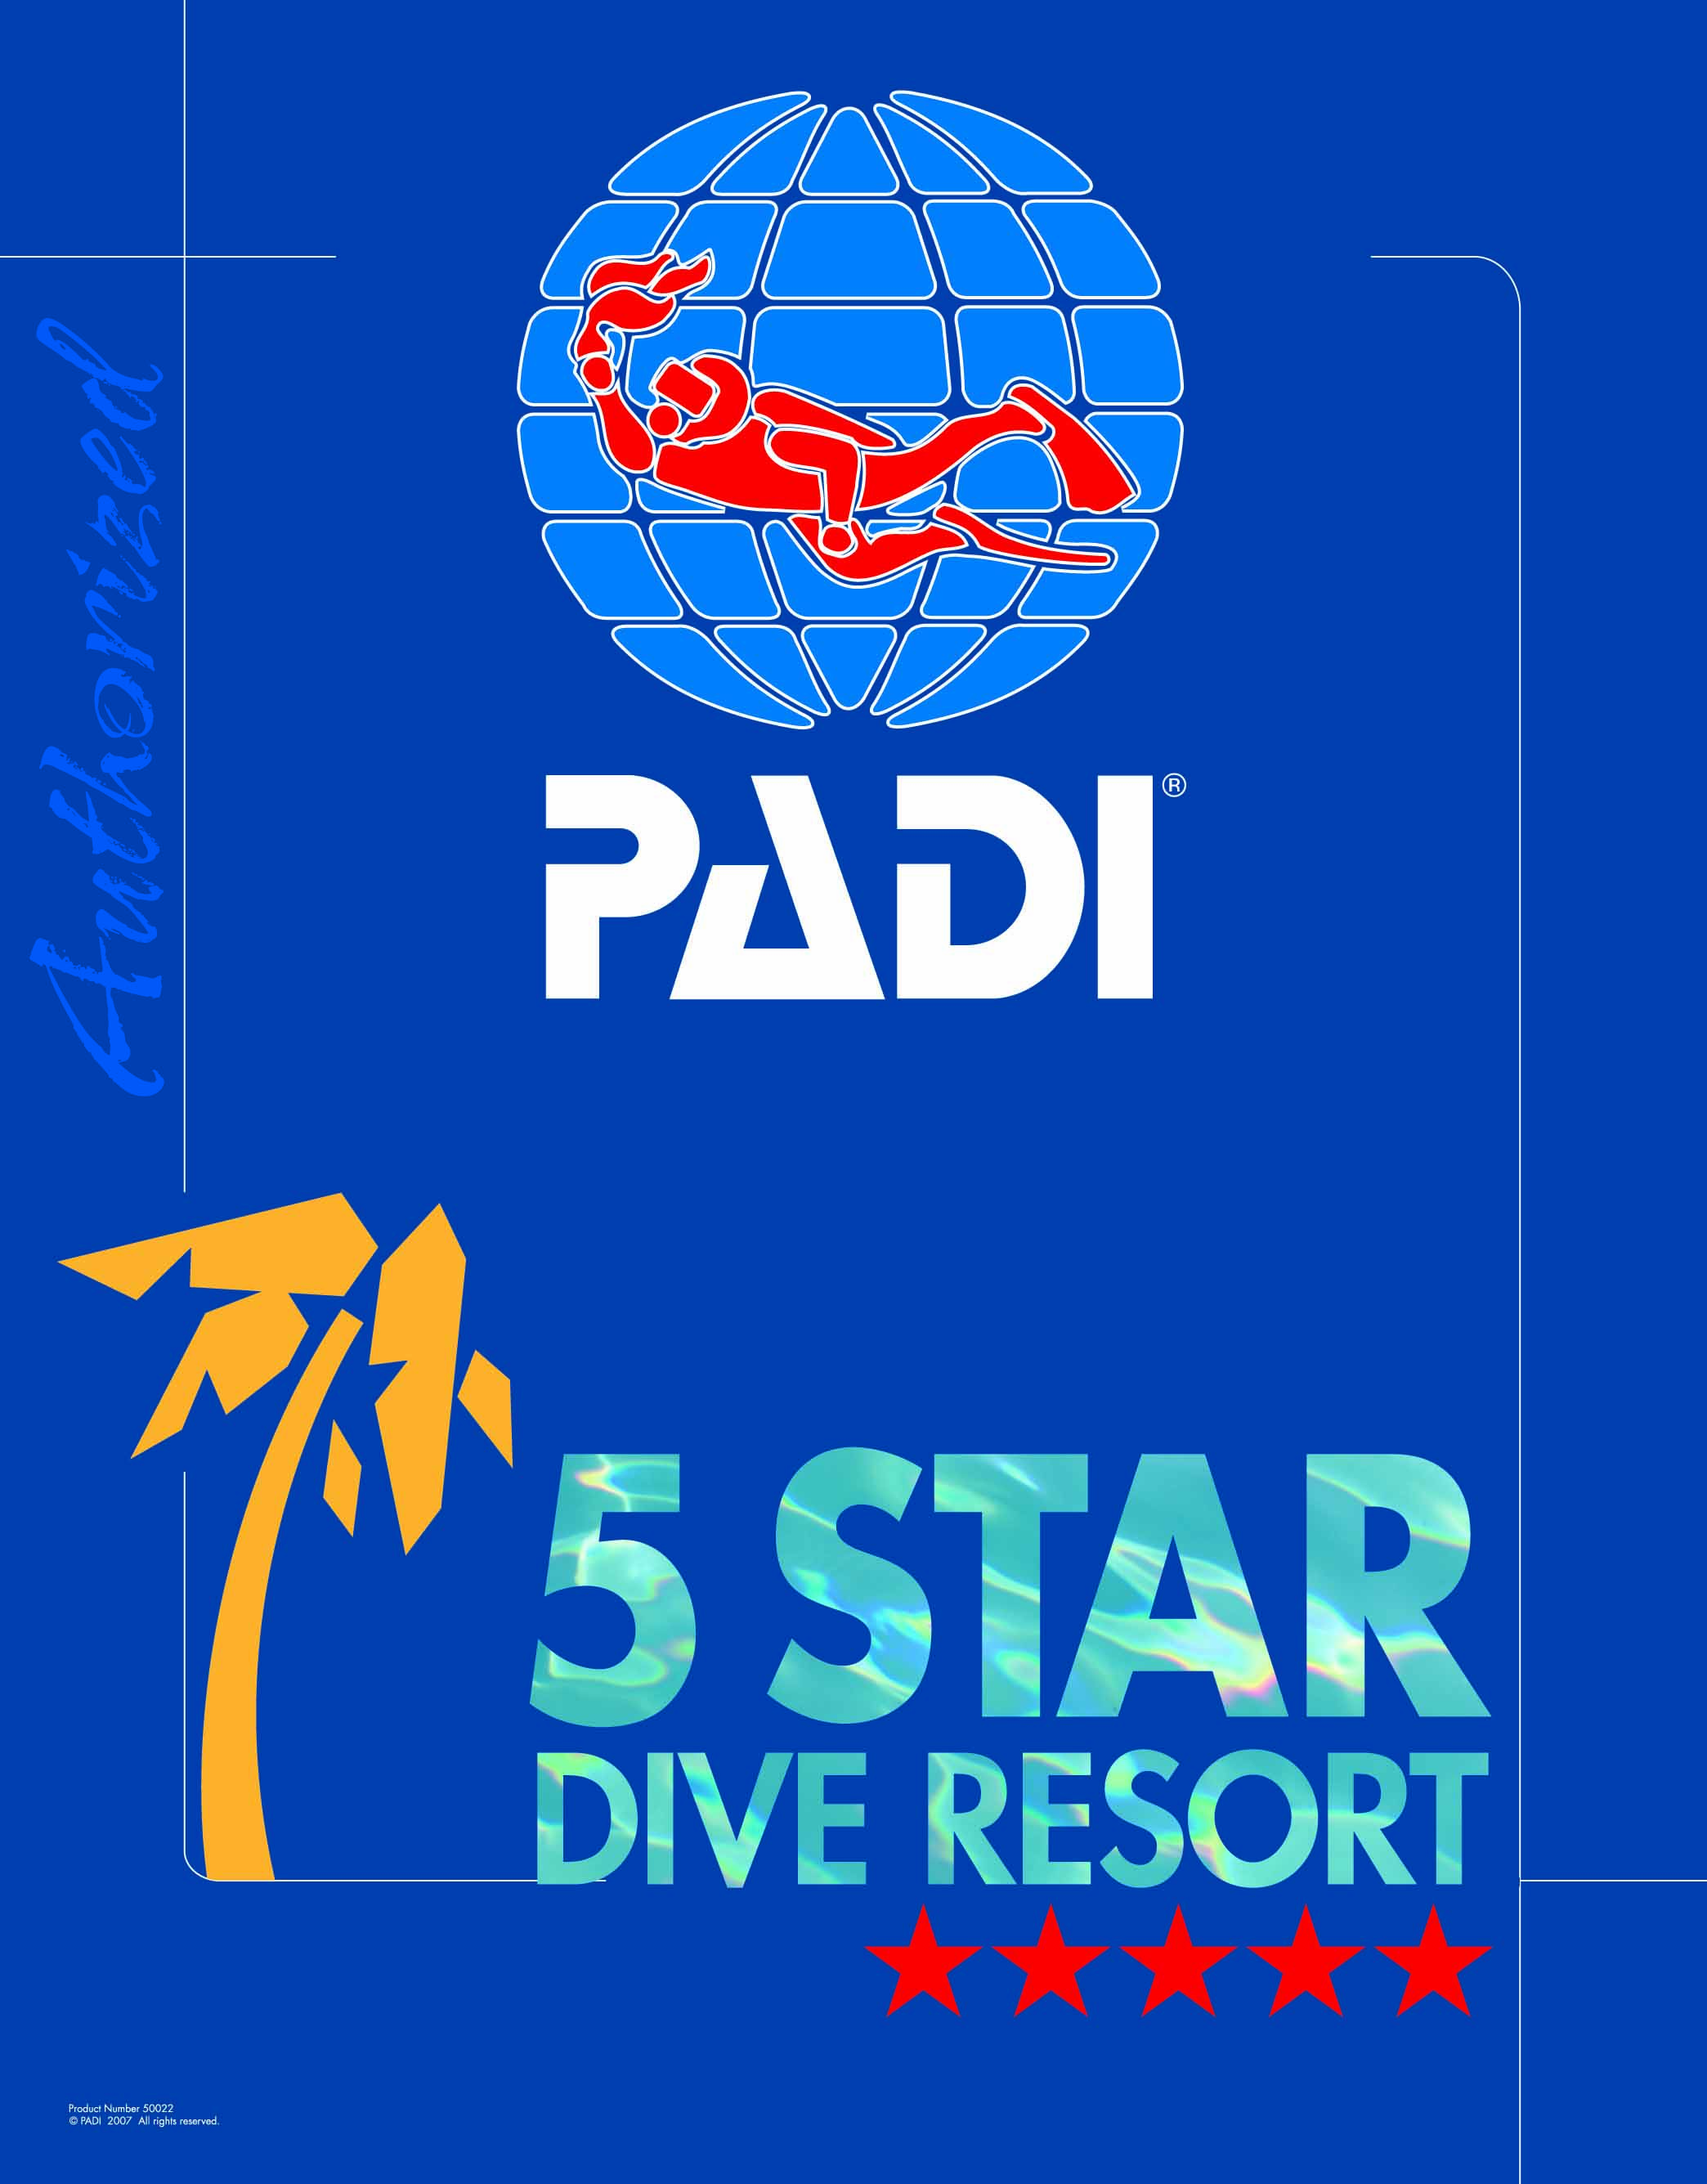 50022_5Star_DiveResort. ""